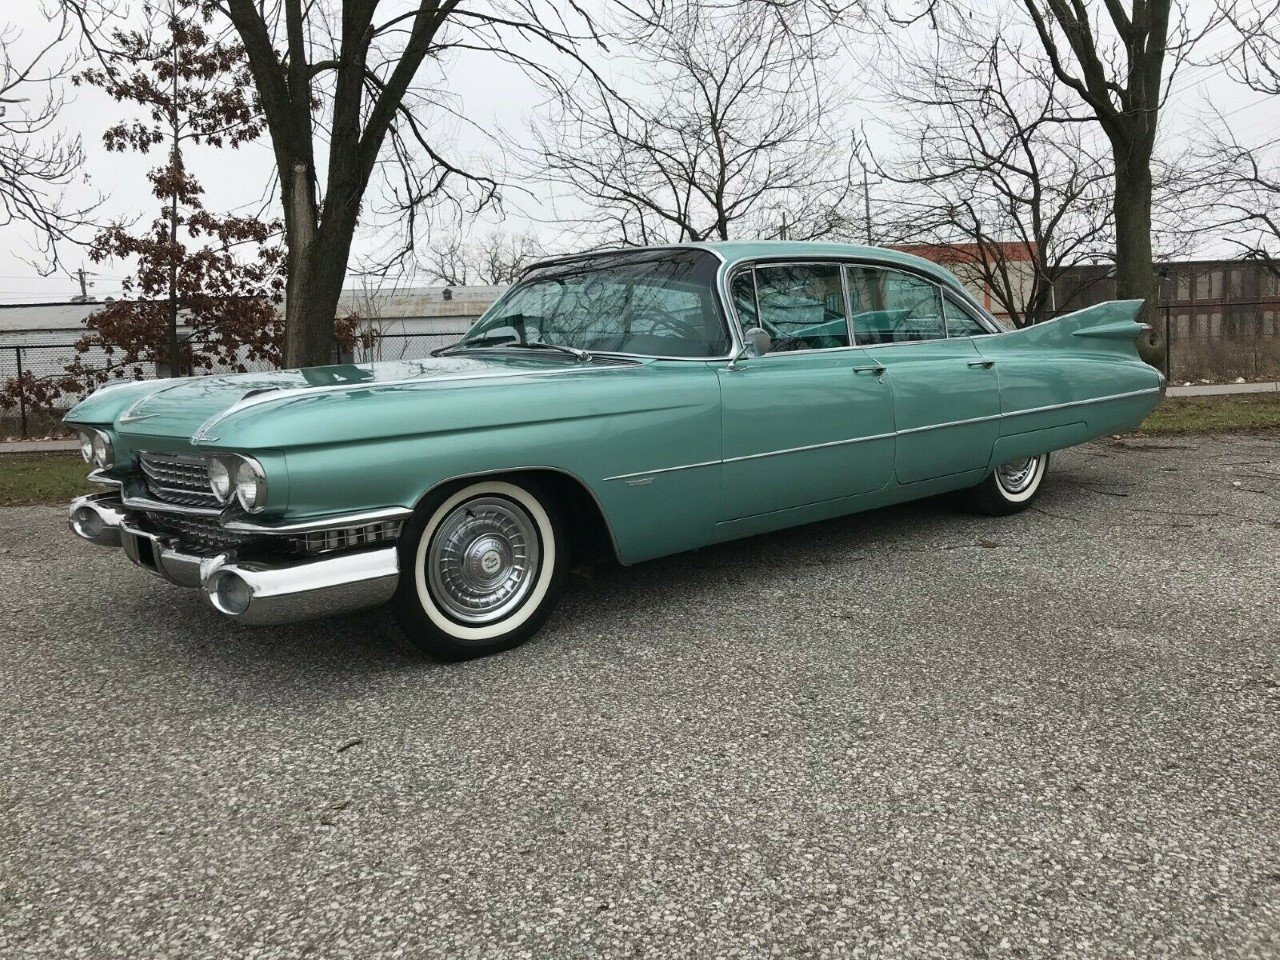 1959 Cadillac Sedan deVille 4DR HT For Sale (picture 1 of 2)